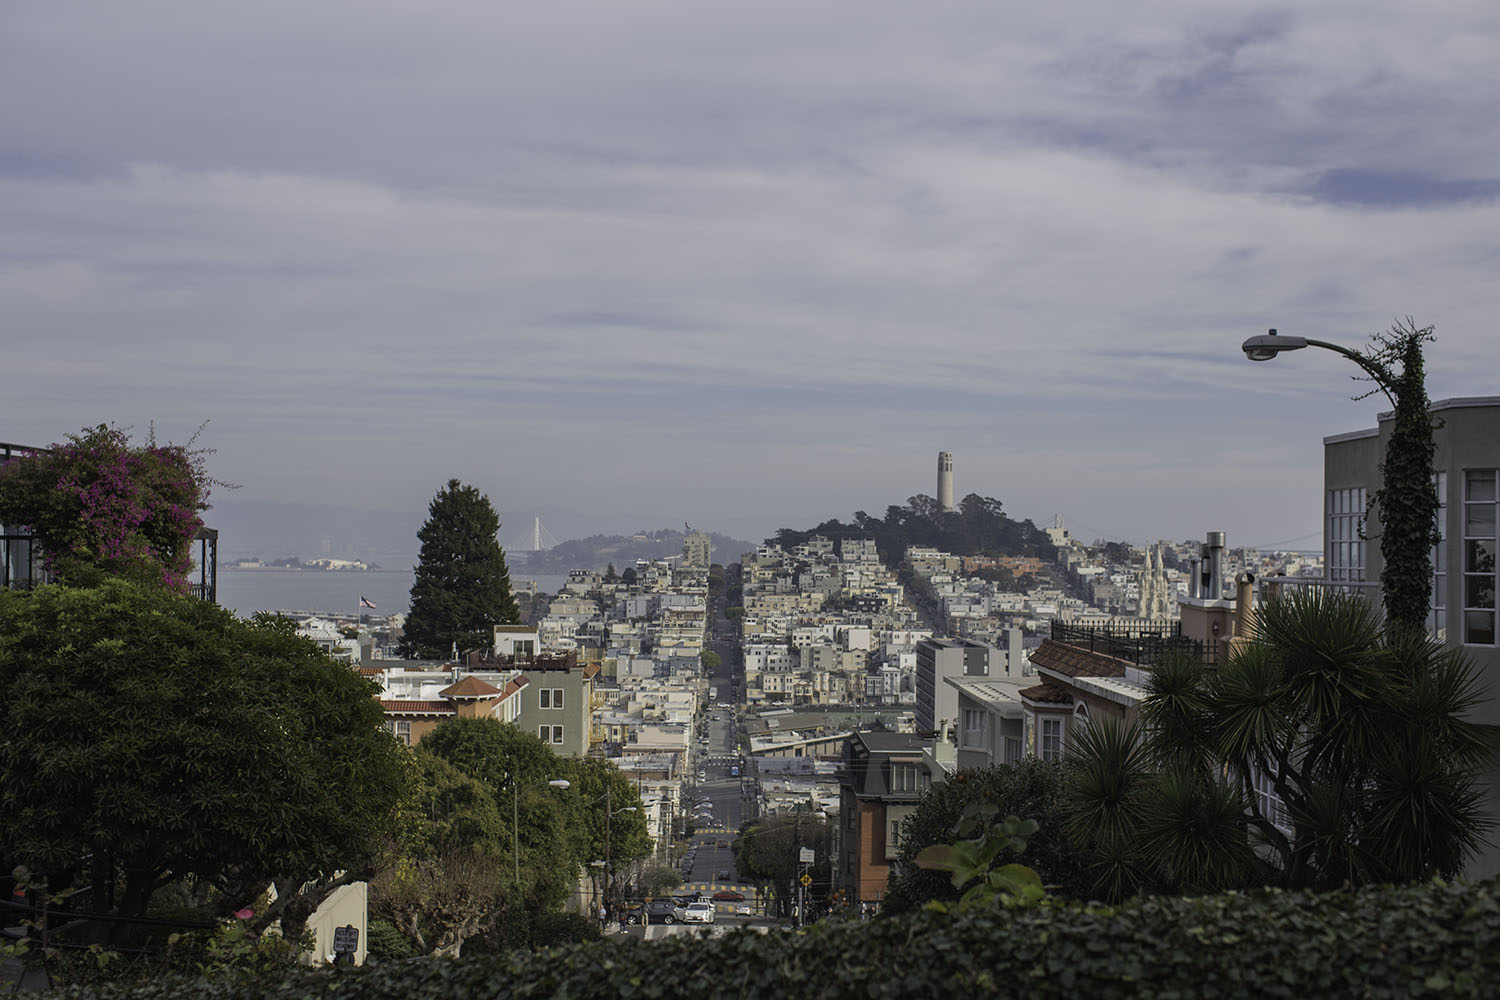 SanFrancisco_CA_RussianHill_005.jpg